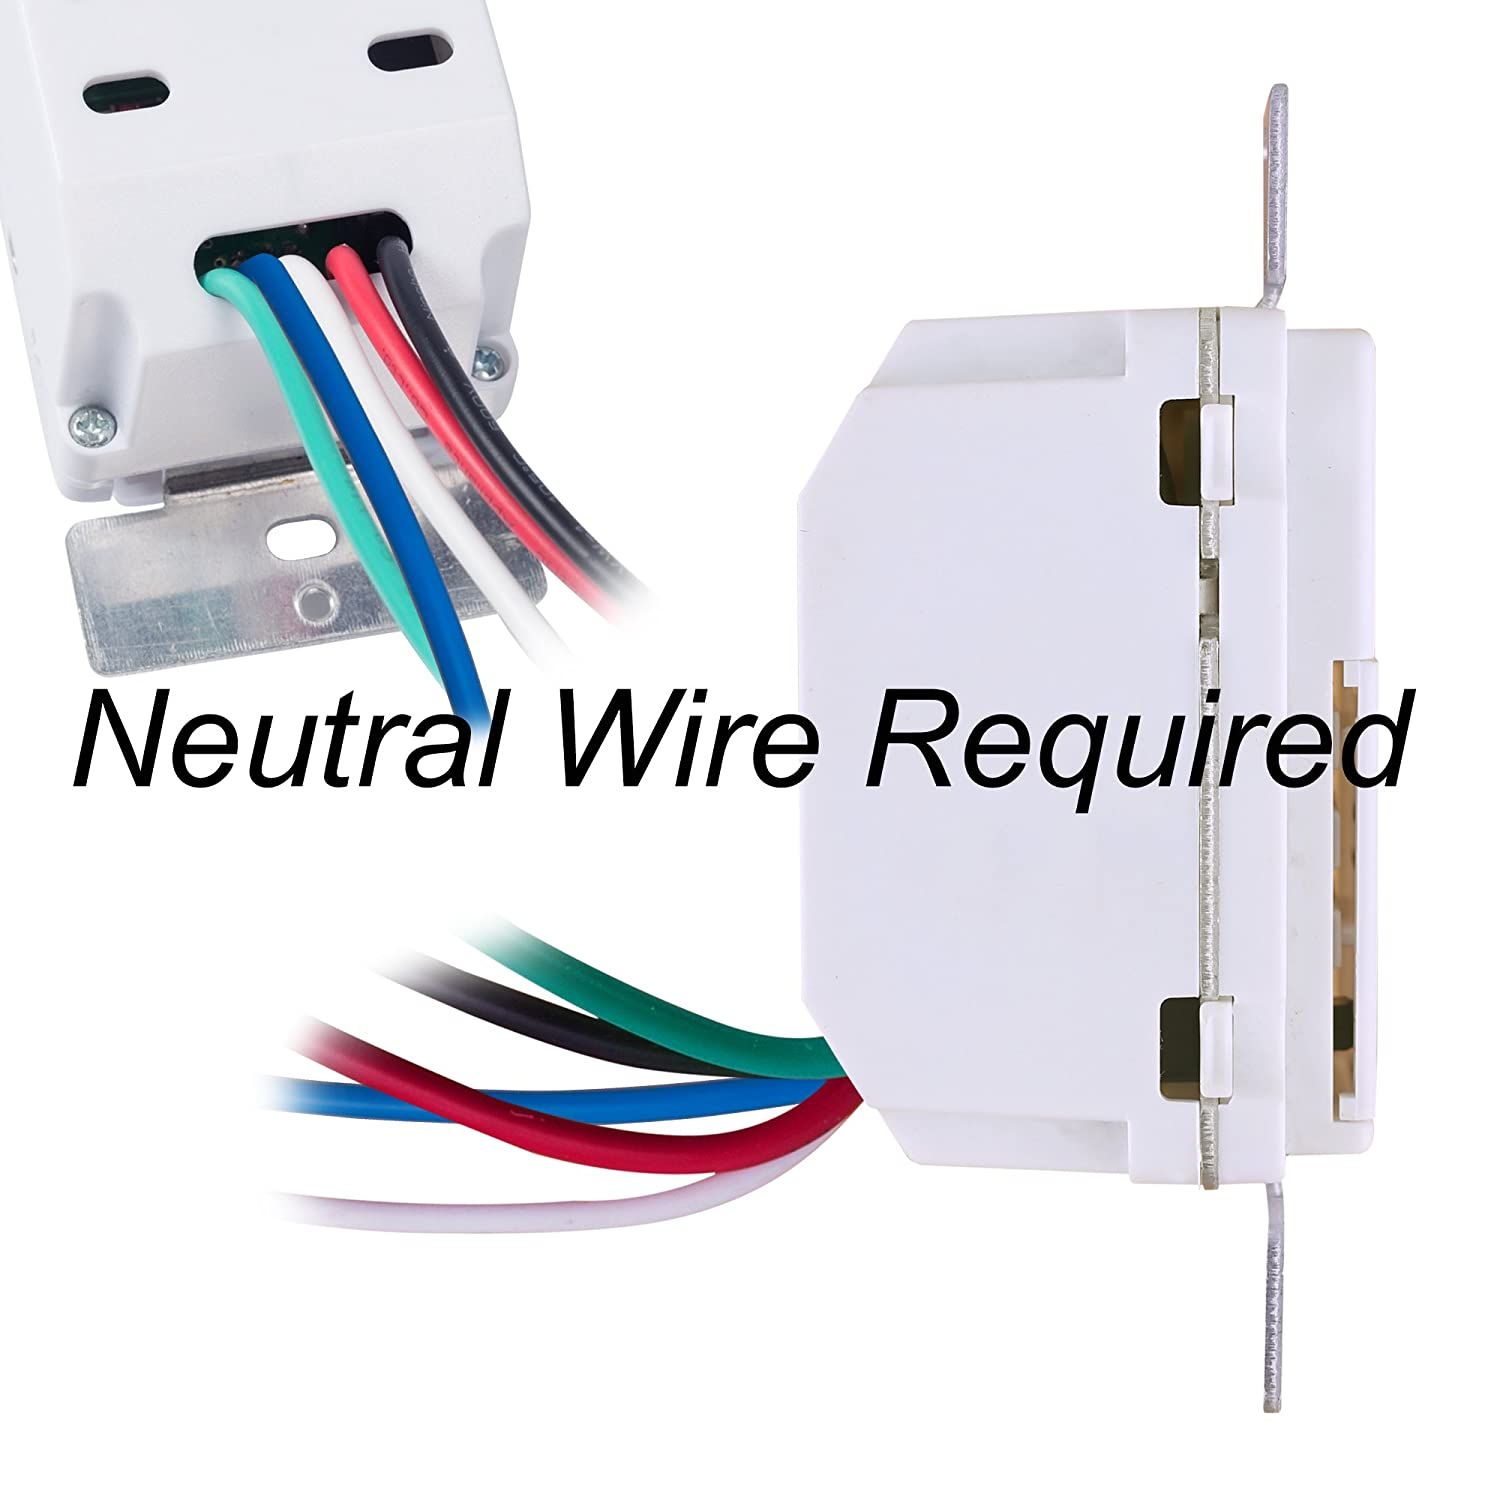 Century 7 Day Programmable In Wall Timer Switch For Lights Fans And Neutral Wires That Have Been Switched As A Reference The American Motors Single Pole 3 Way Compatible With Spdt Both Use Wire Required